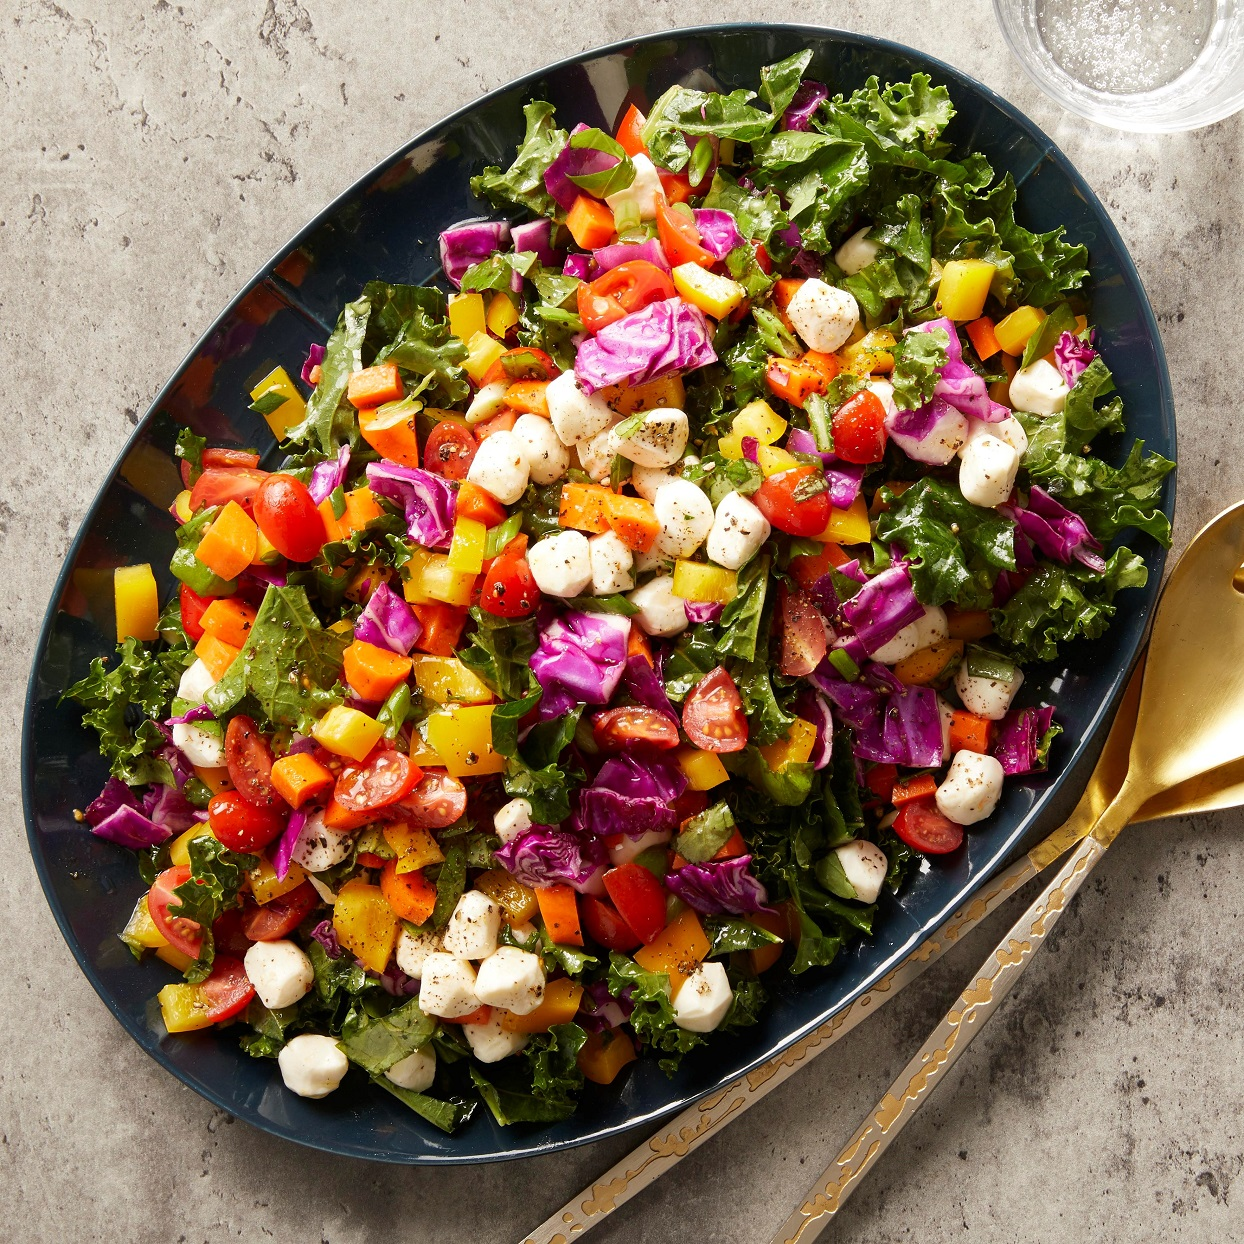 Eat-the-Rainbow Chopped Salad with Basil & Mozzarella